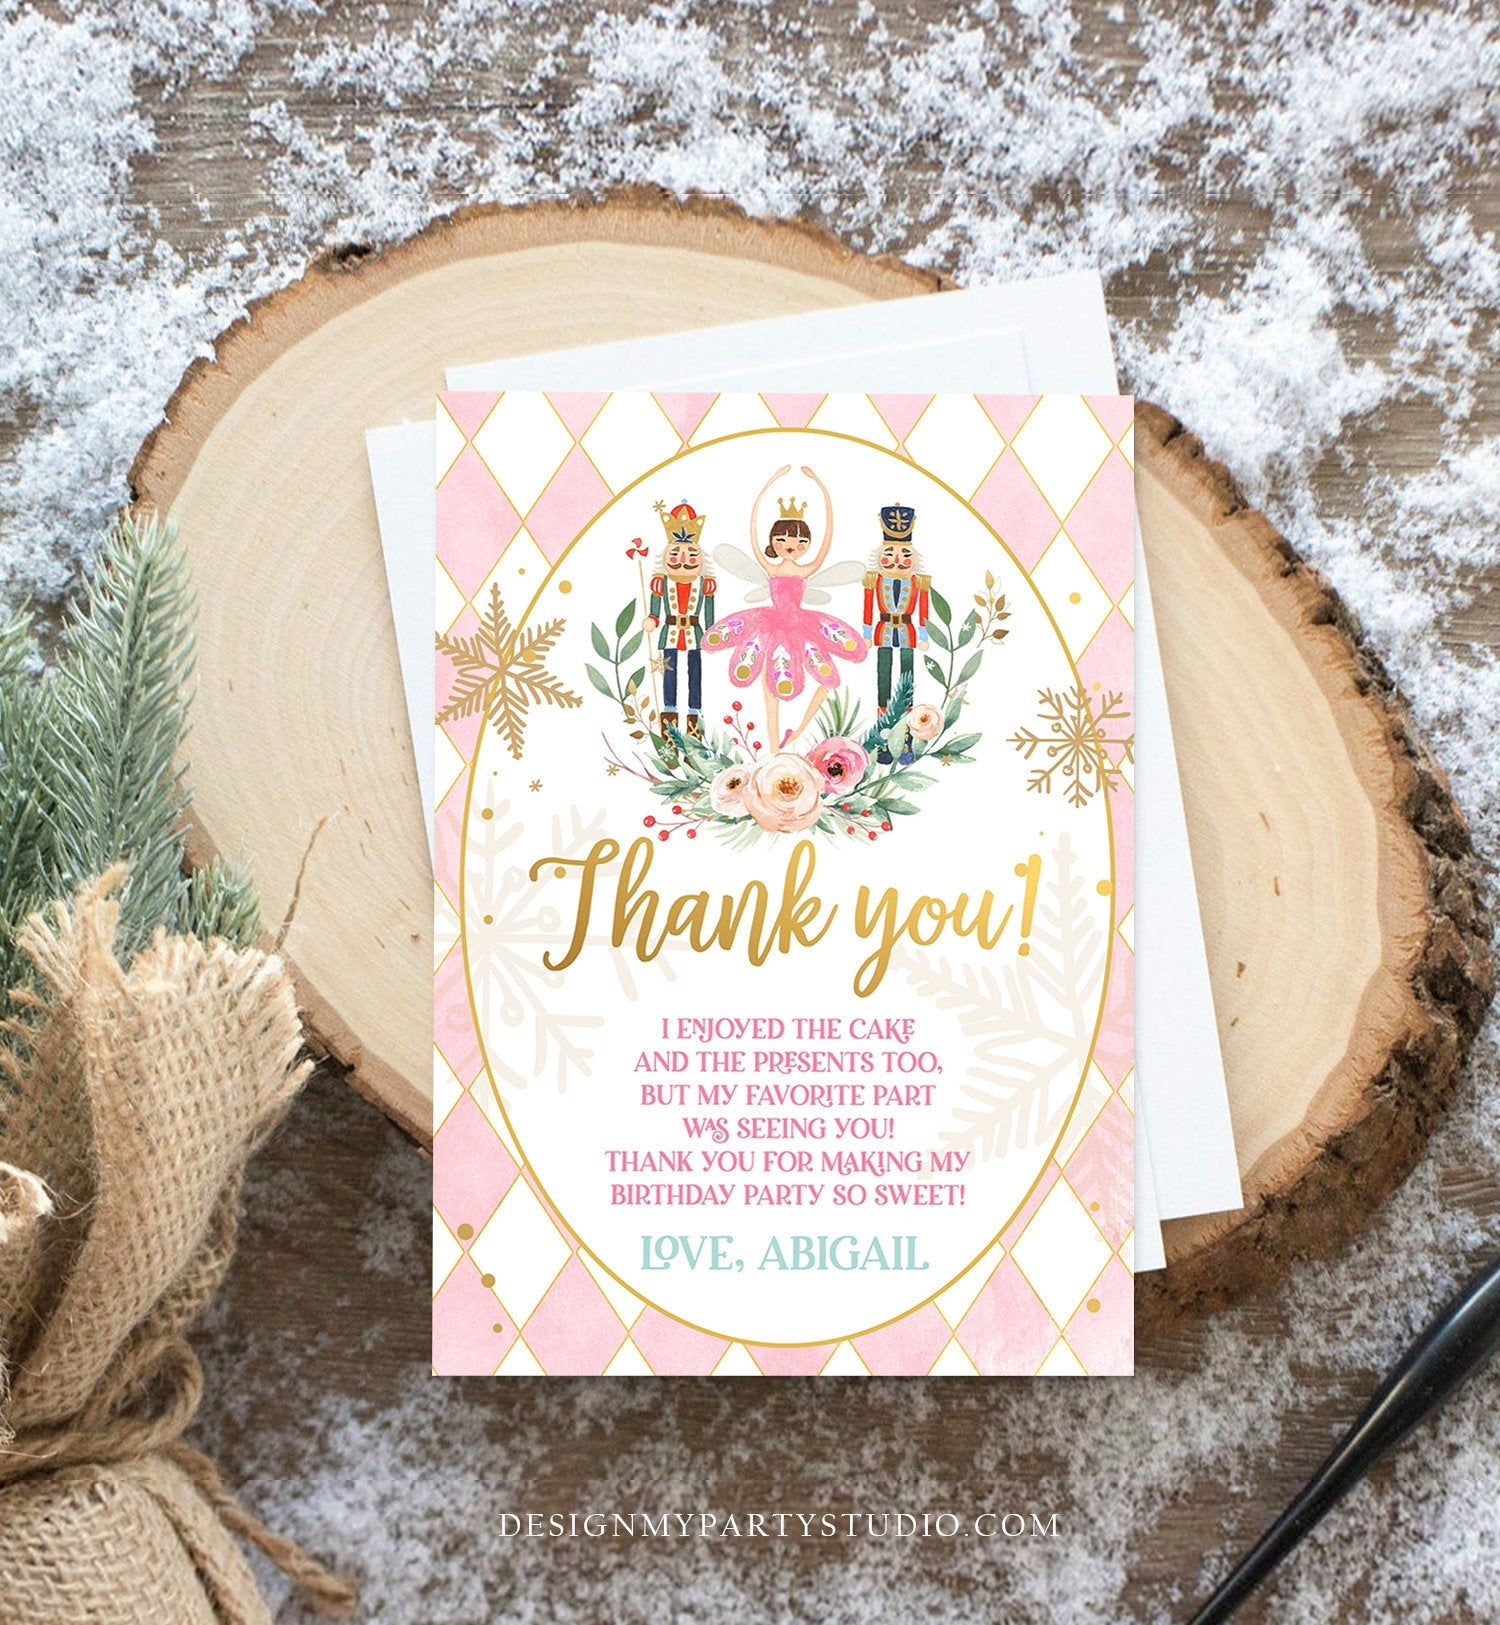 Editable Thank You Card Nutcracker Birthday Land of Sweets Thank You Note Sugar Plum Fairy Girl Pink Gold Label Corjl Template Digital 0352